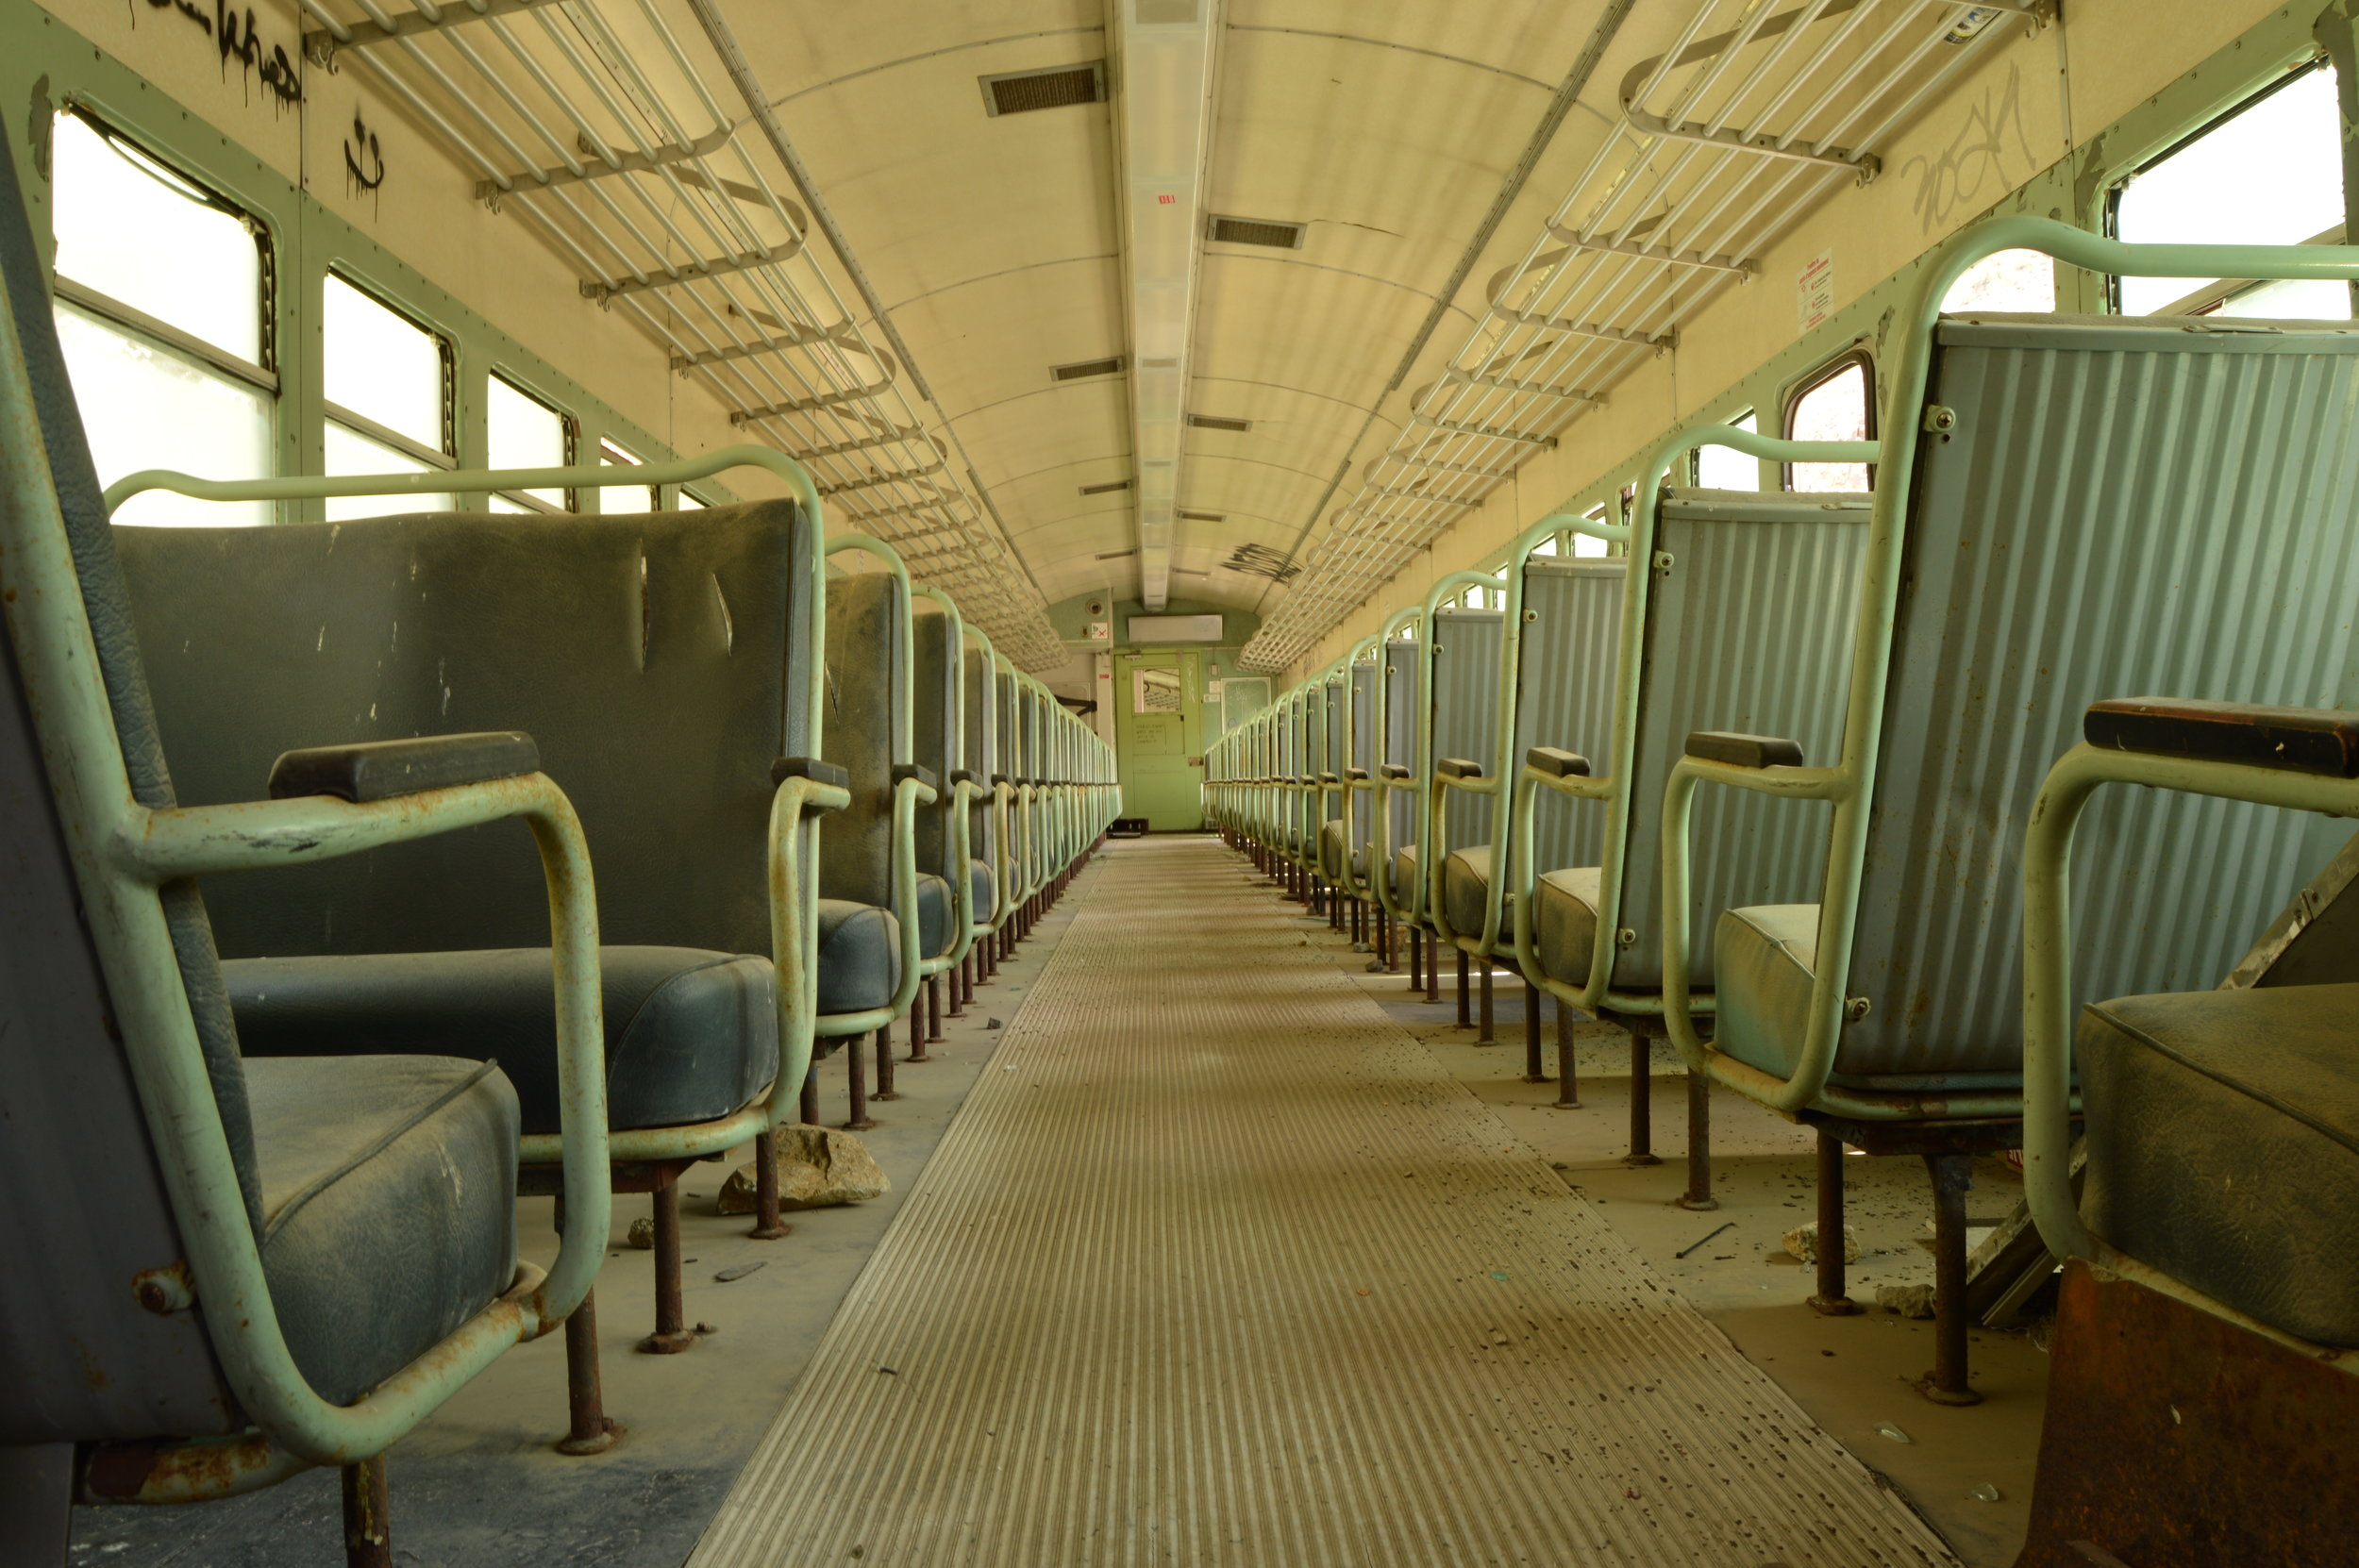 Interior of abandoned train car near Mexican border. Photo: Joshua Stephens